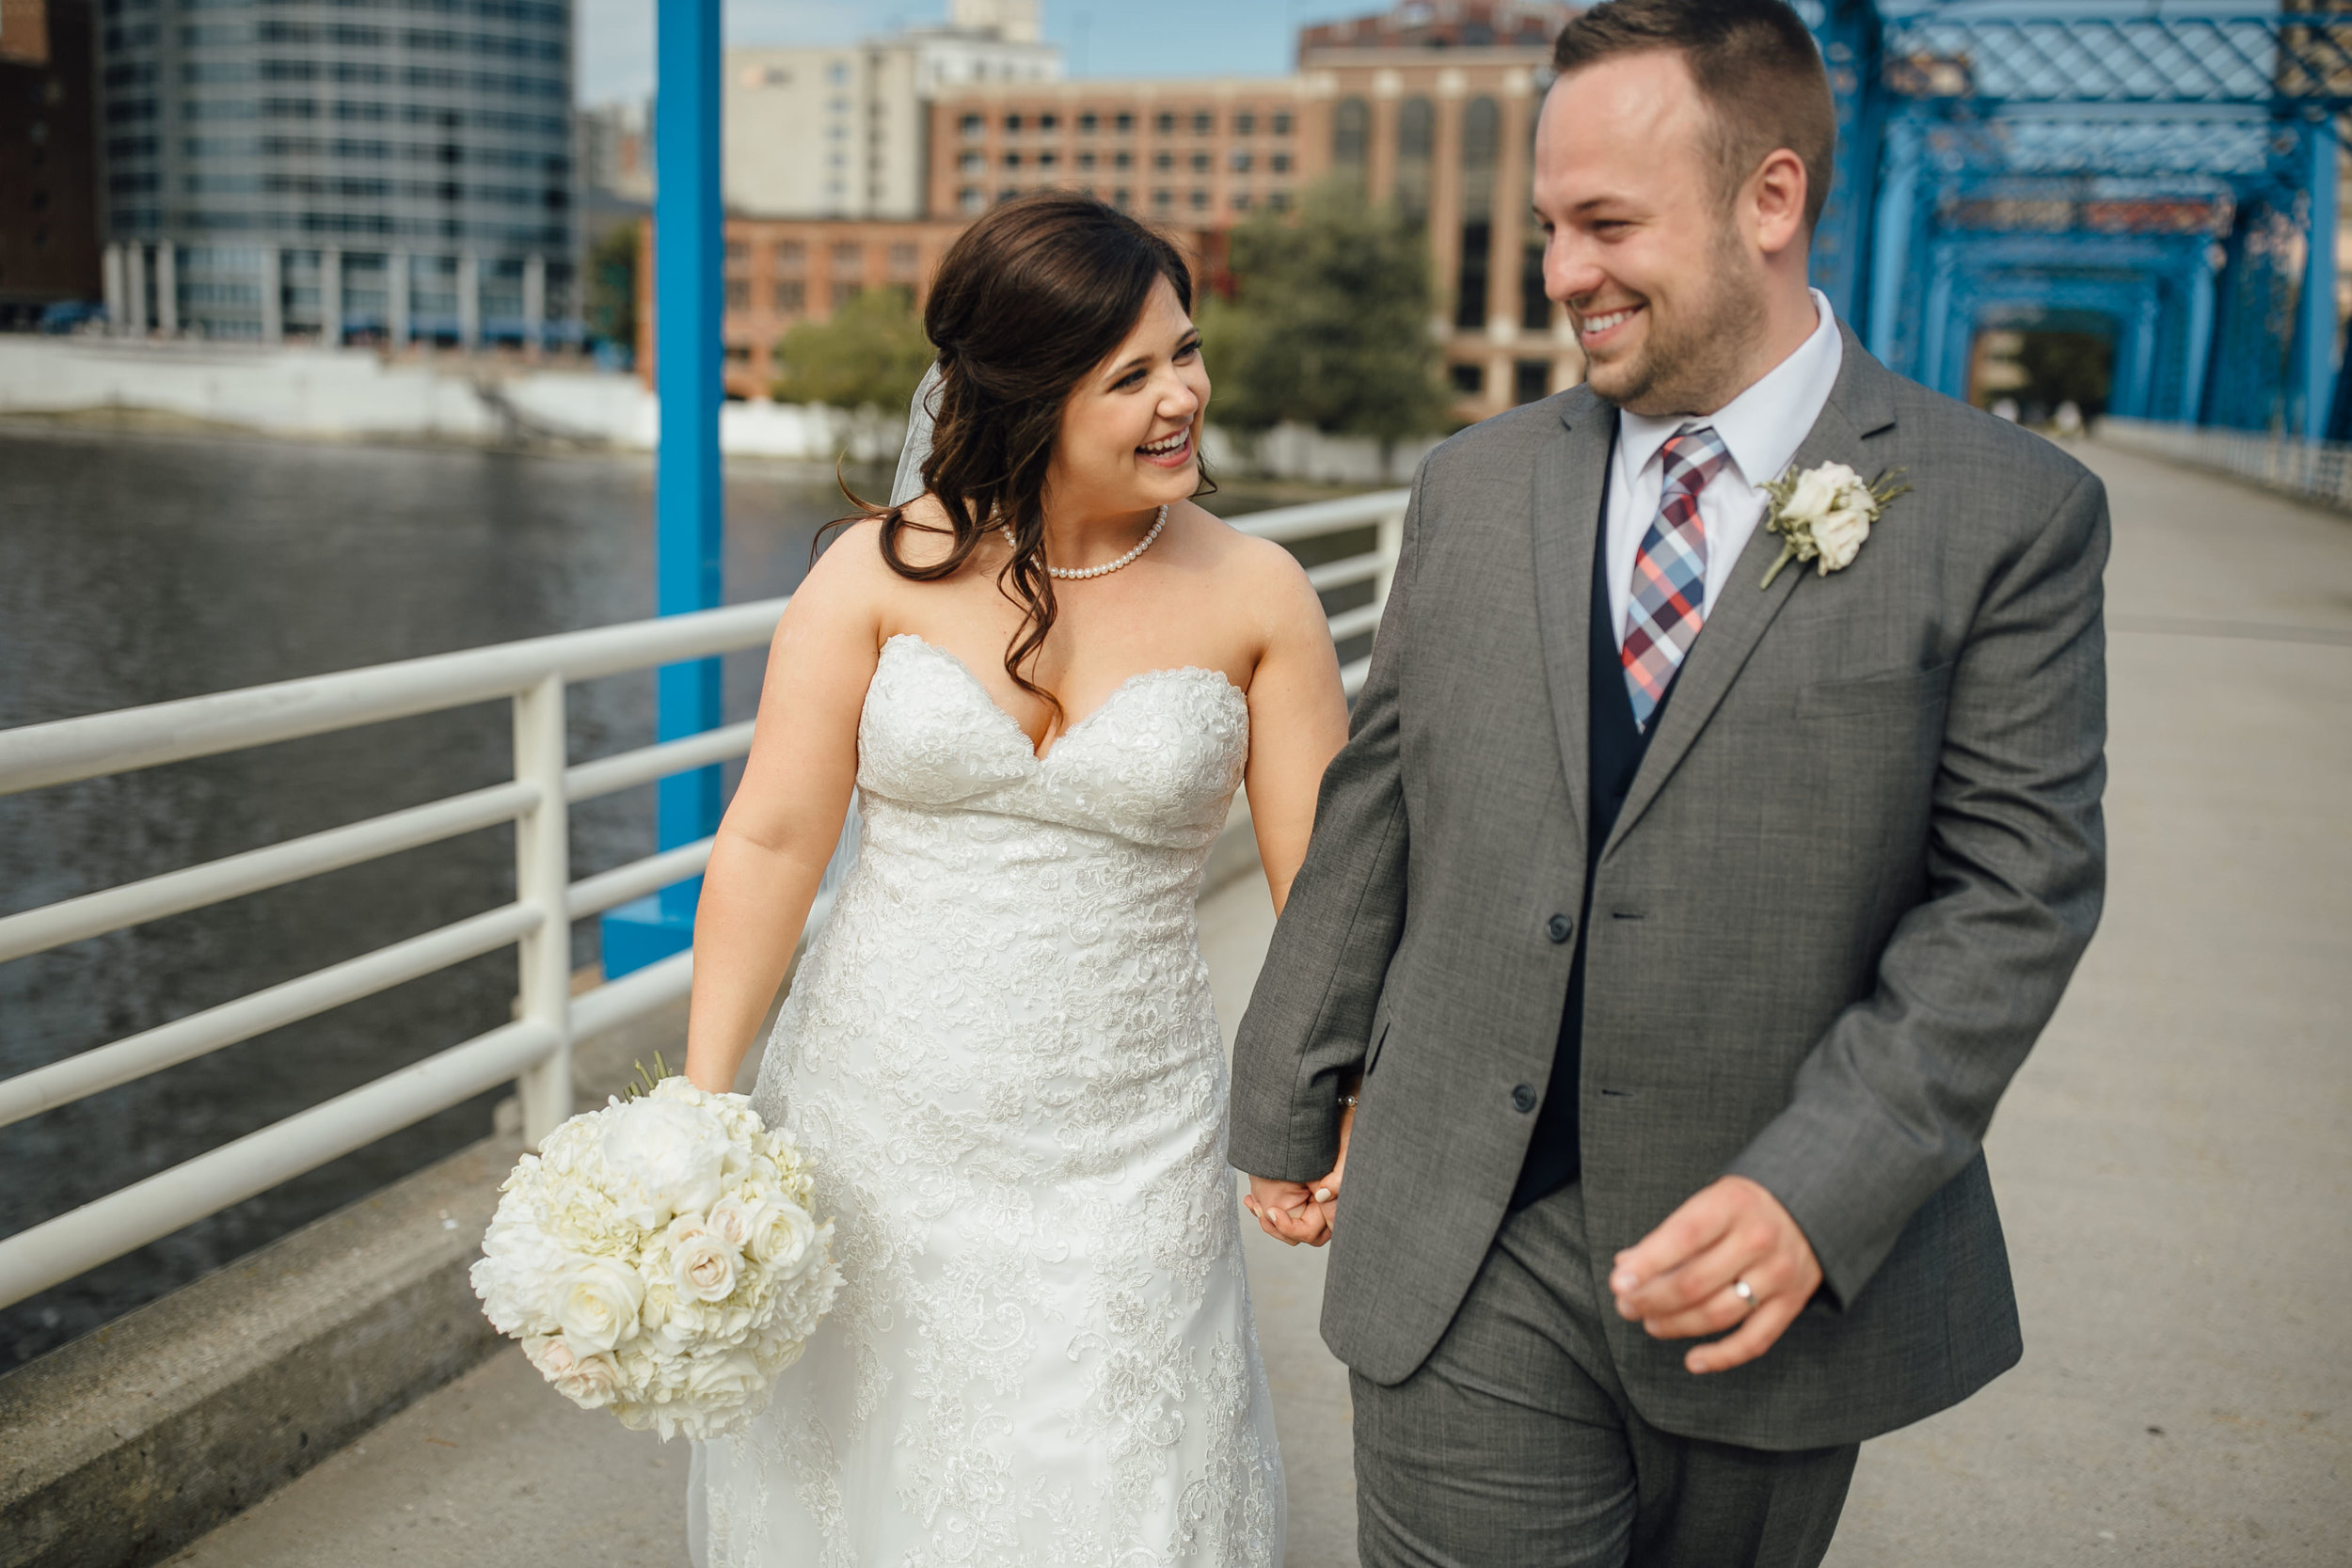 2018-5-Kelly-Jake-Portraits-Grand-Rapids-Wedding-Michigan-Wedding-Photographer-451.jpg